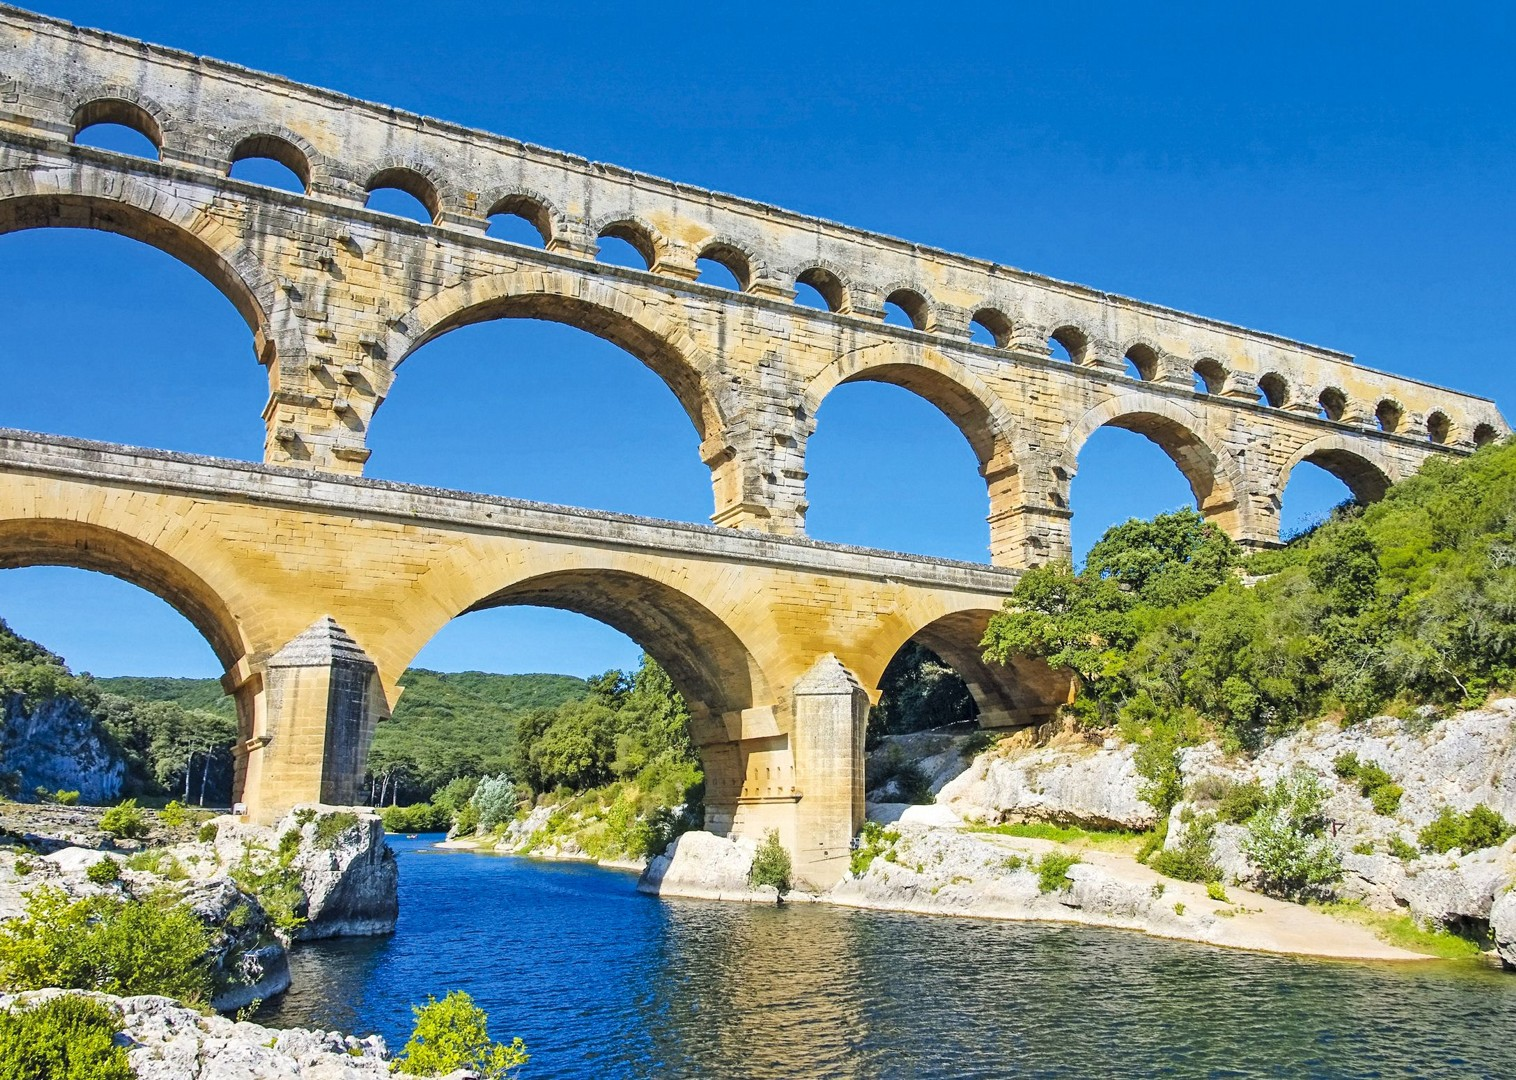 36487601631_260b01e7bb_o-2.jpg - France - Provence - Avignon to Aigues-Mortes - Bike and Barge Holiday - Leisure Cycling